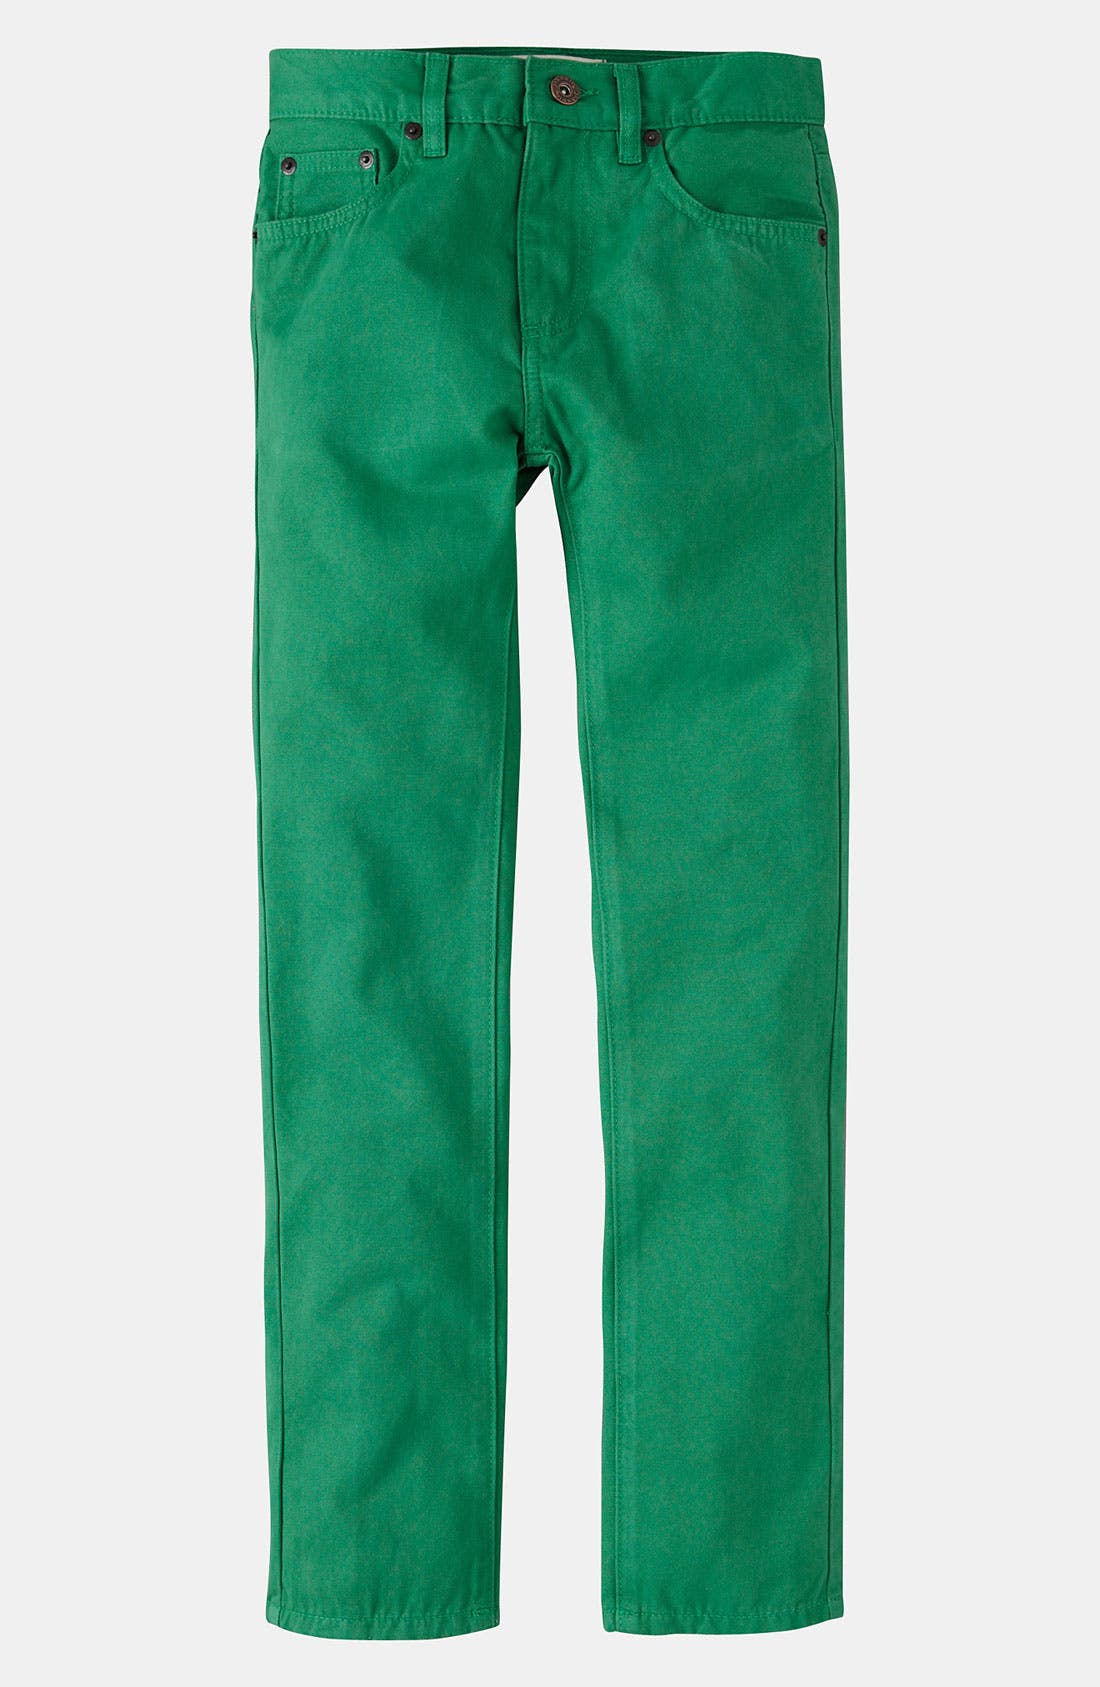 Main Image - Johnnie b Slim Fit Pants (Big Boys)